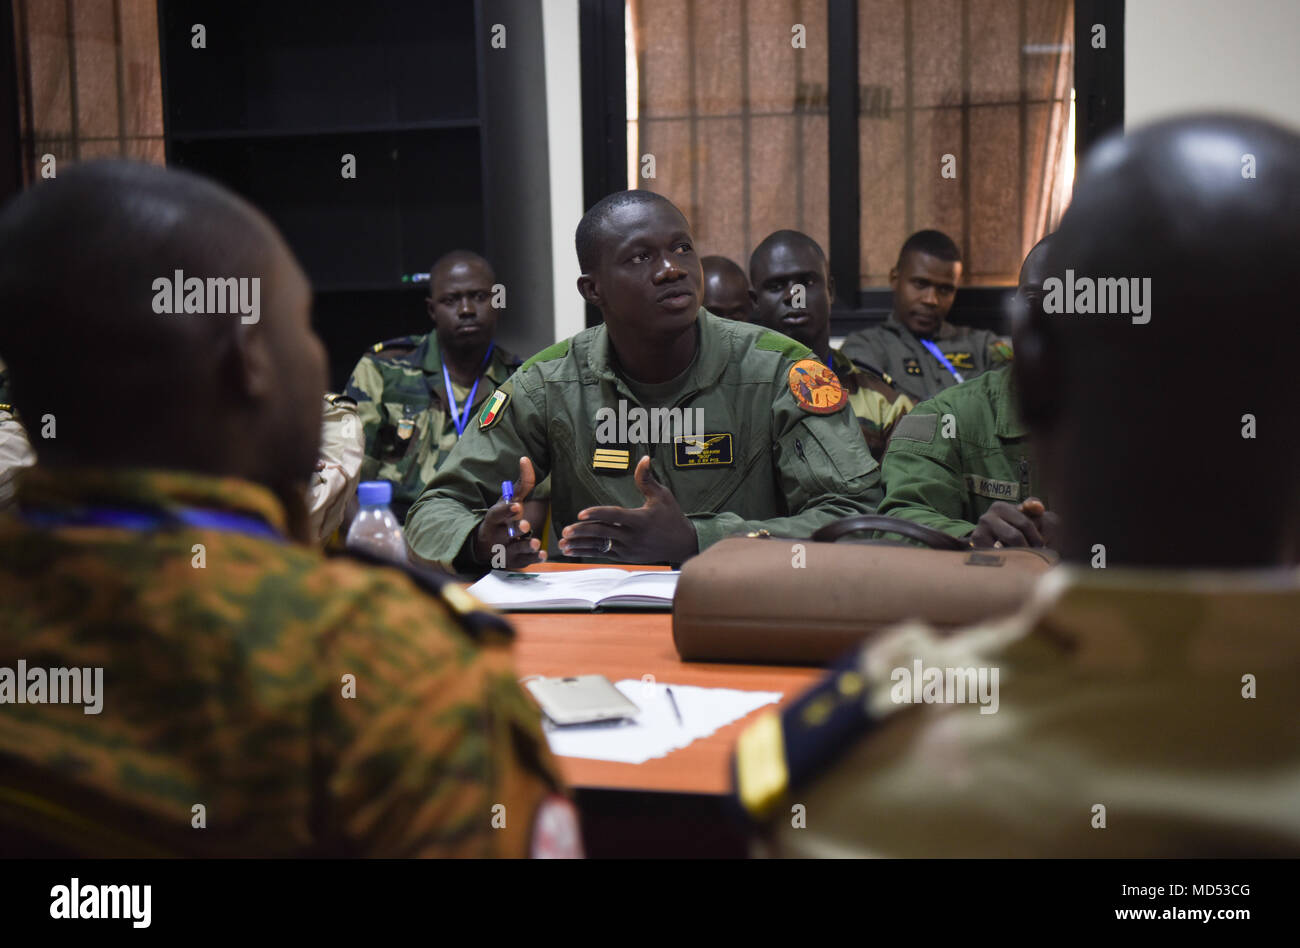 Benin helicopter pilot, Capt. Chabi Ibrahim, discusses safety in air operations during African Partnership Flight Senegal at Captain Andalla Cissé Air Base, Senegal, March 20, 2018. APF Senegal is a multilateral, military-to-military engagement emphasizing security assistance with African air forces. (U.S. Air Force photo by Capt. Kay Magdalena Nissen) - Stock Image